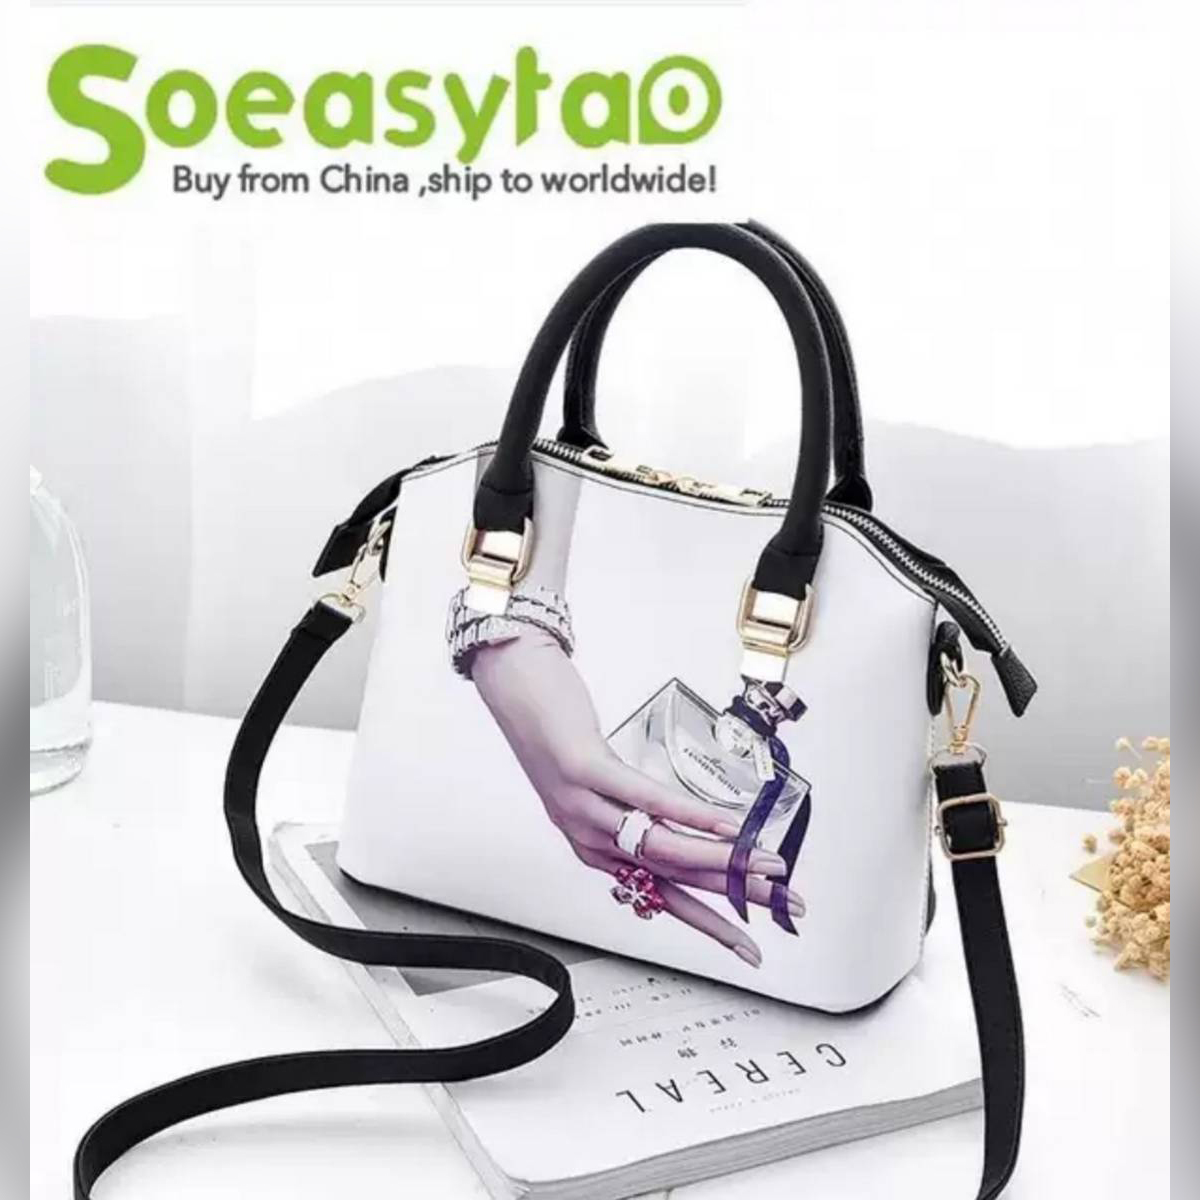 Ayesha Purse Women Handbag Fashion Style Female Painted Shoulder Bags Flower Pattern Messenger Bags Leather Casual Tote Evening Bag PP-840